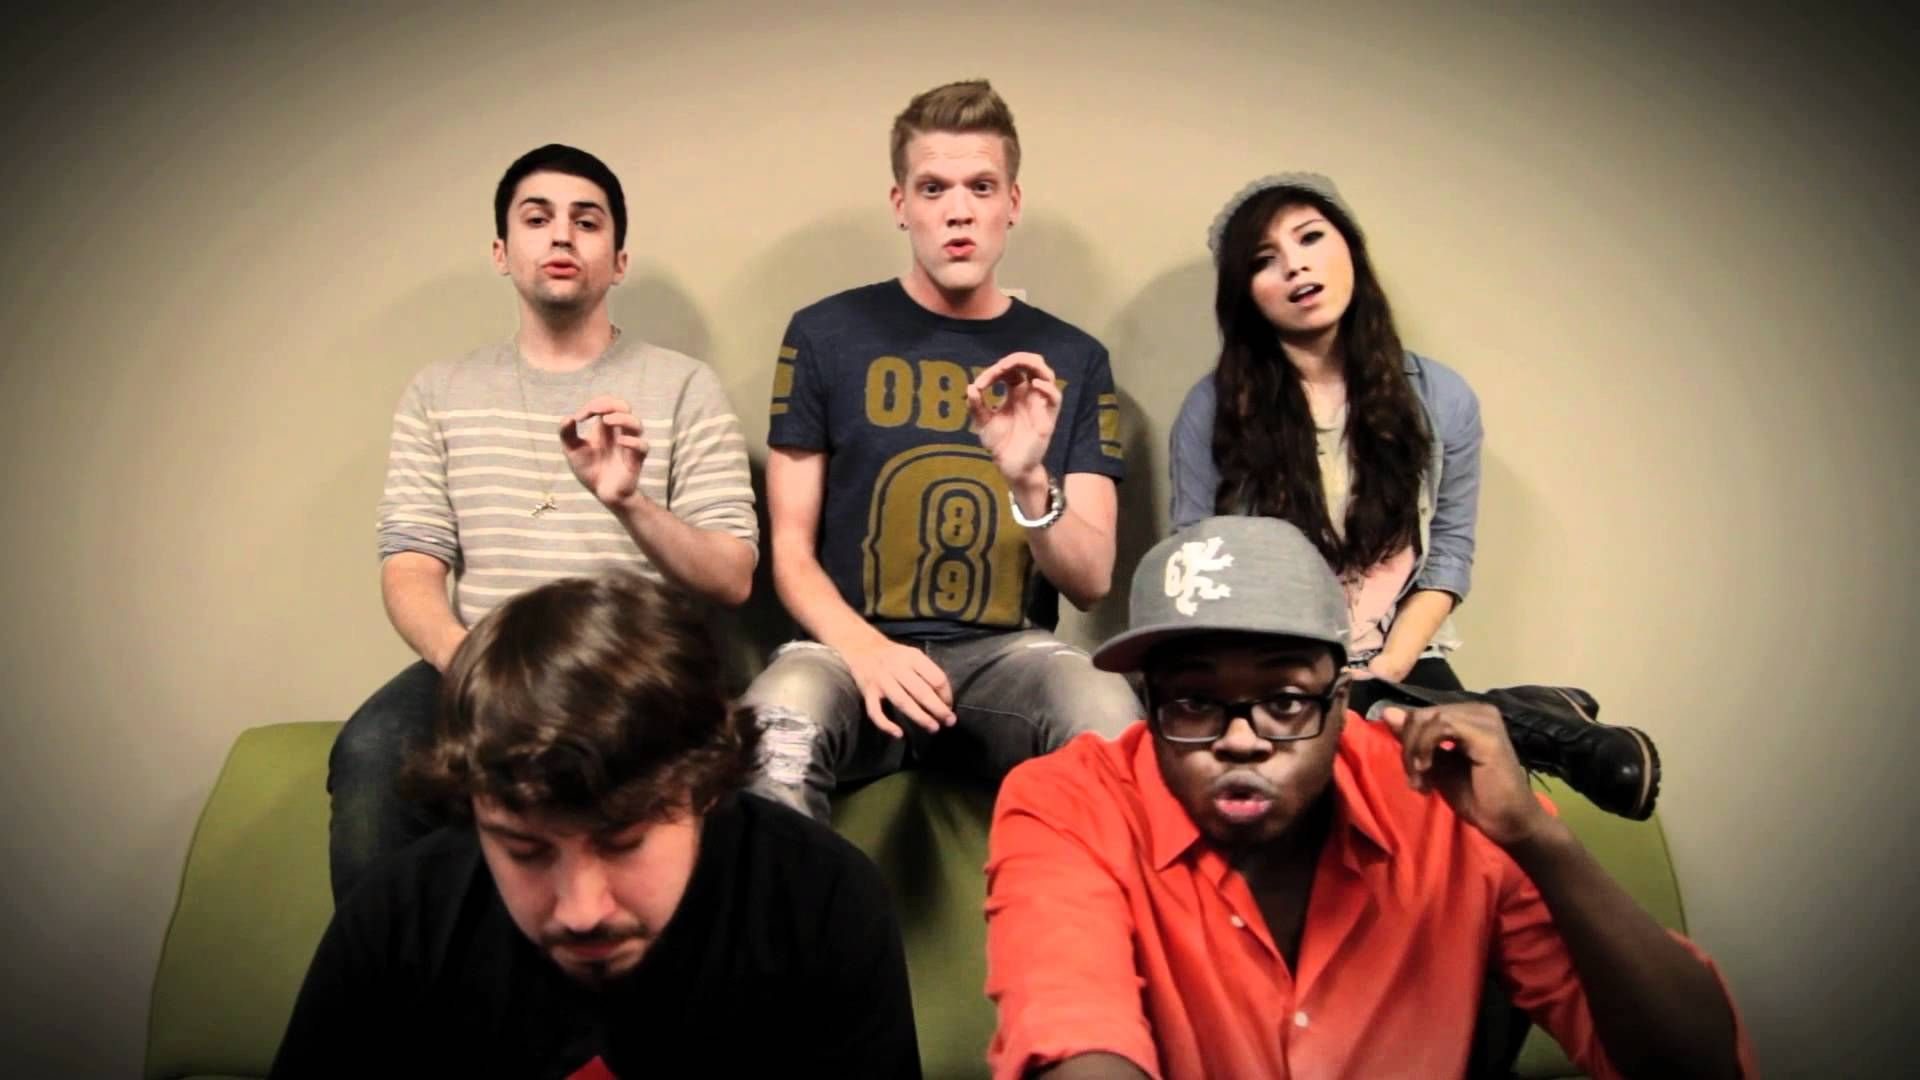 One day I might stop posting ptx videos :) As Long As You Love Me